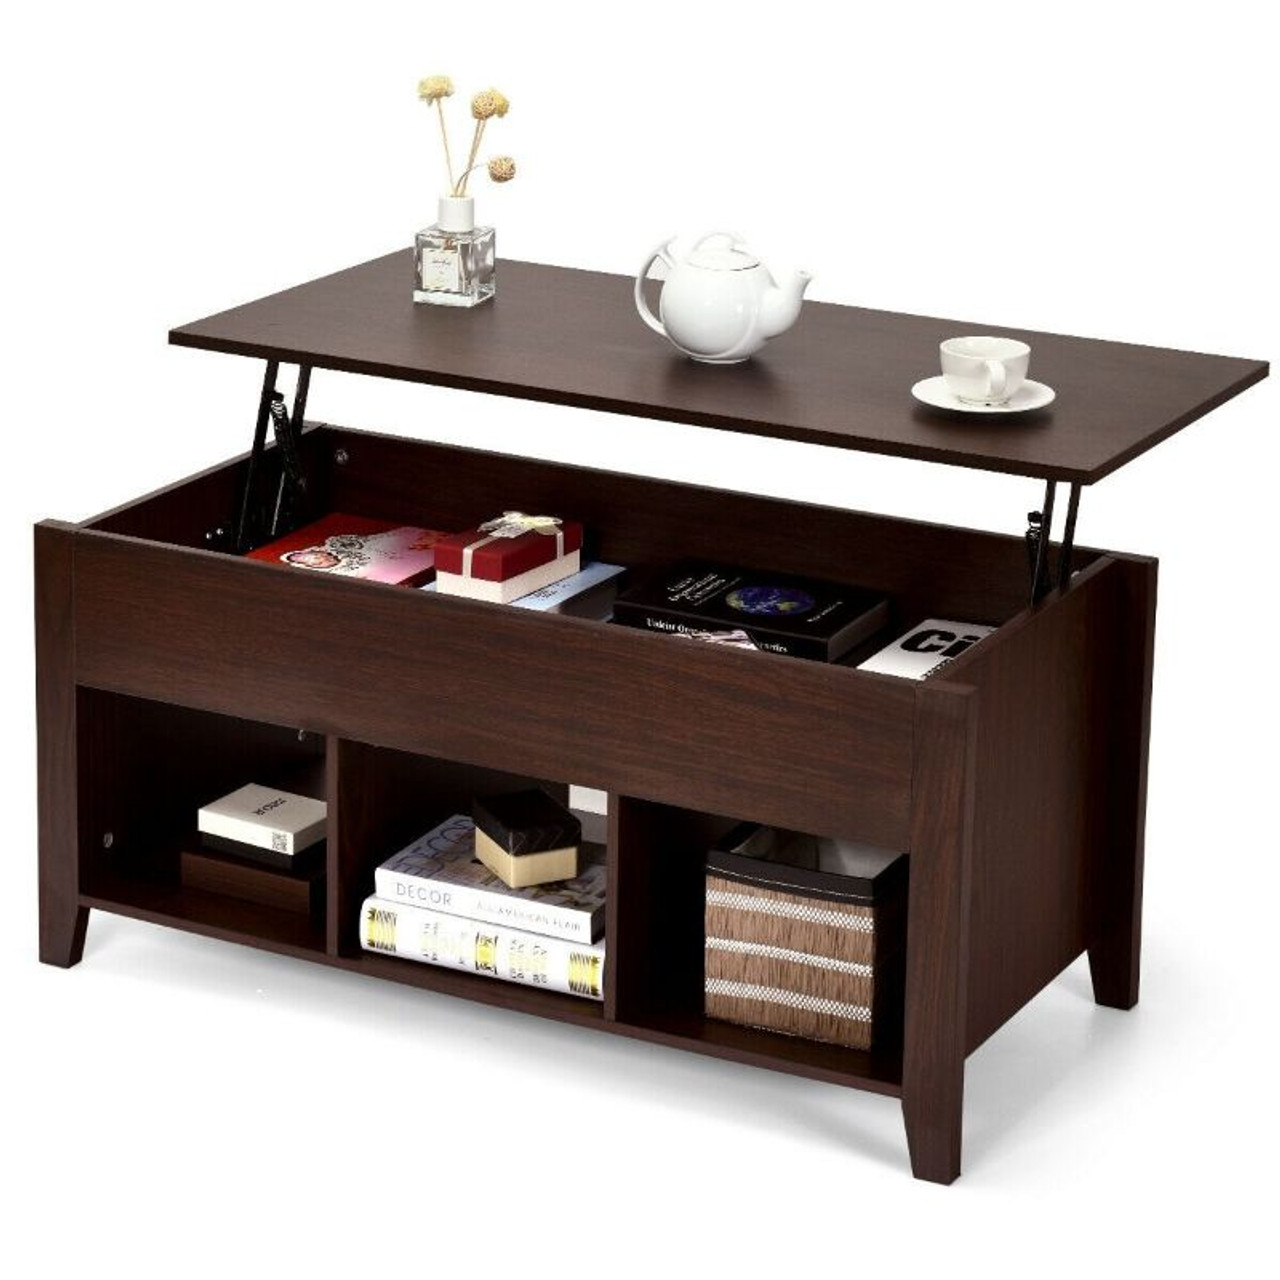 Lift Top Coffee Table with Storage Lower Shelf